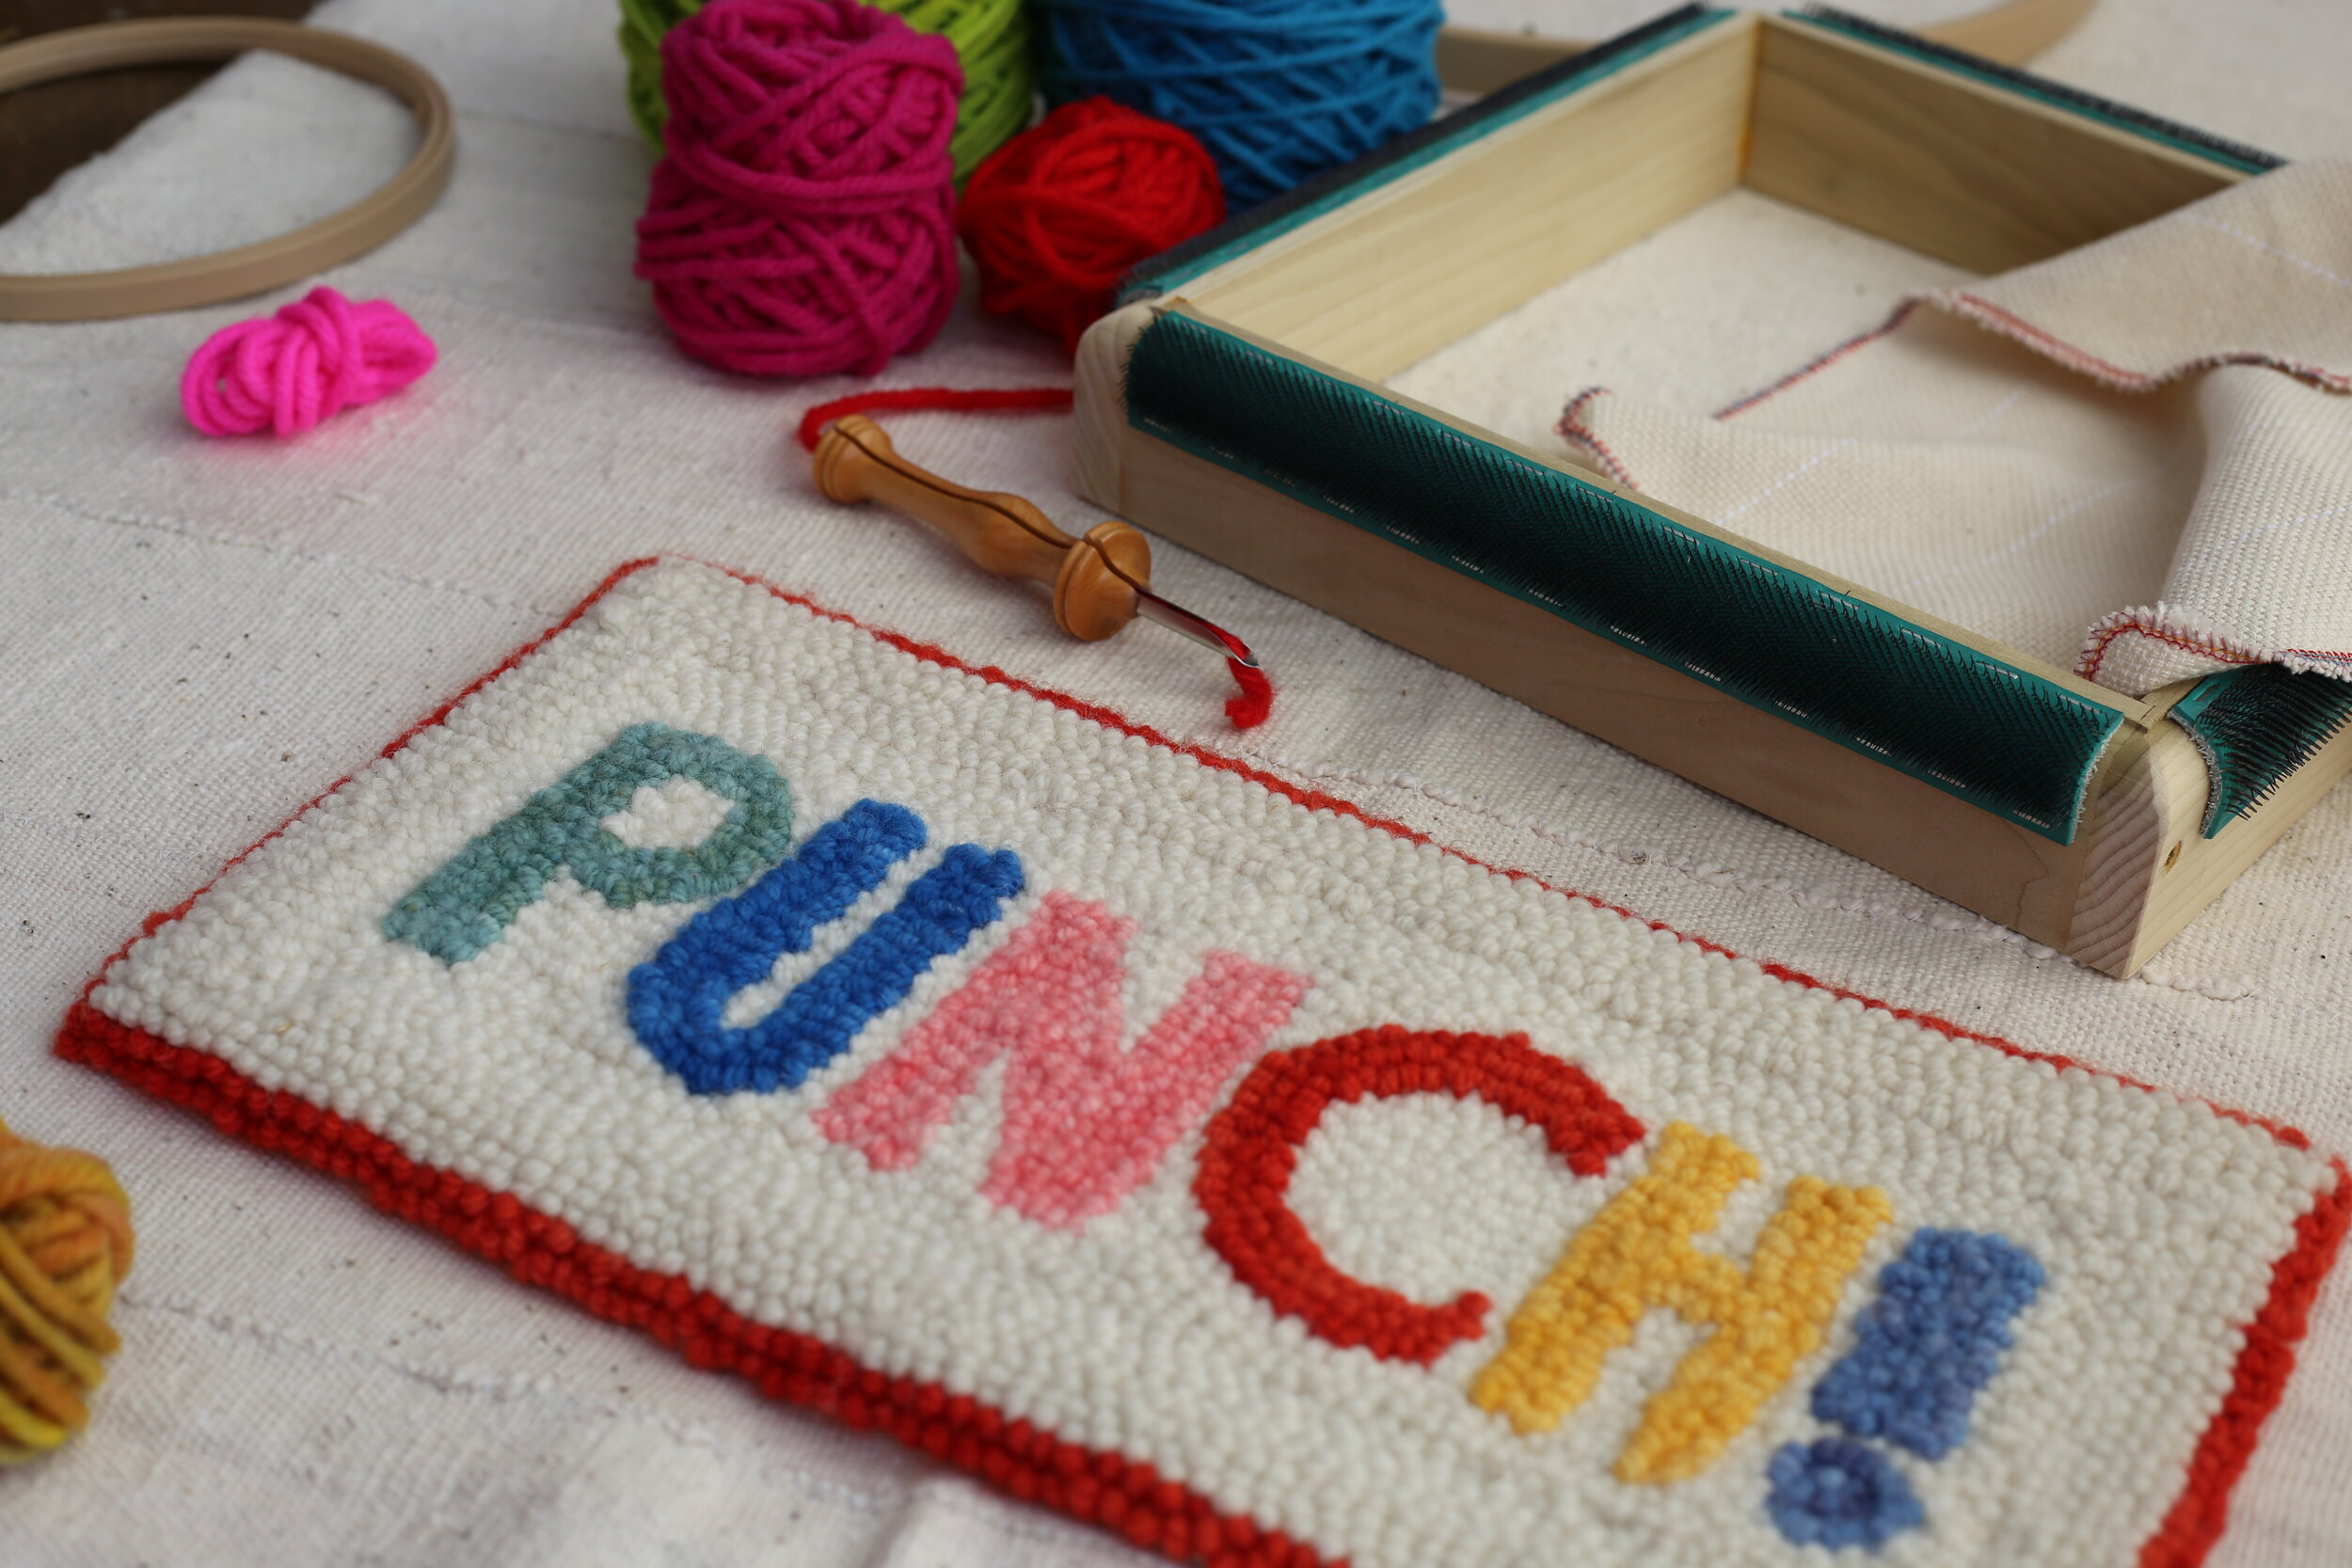 ABOUT — PUNCH! Rug Hooking